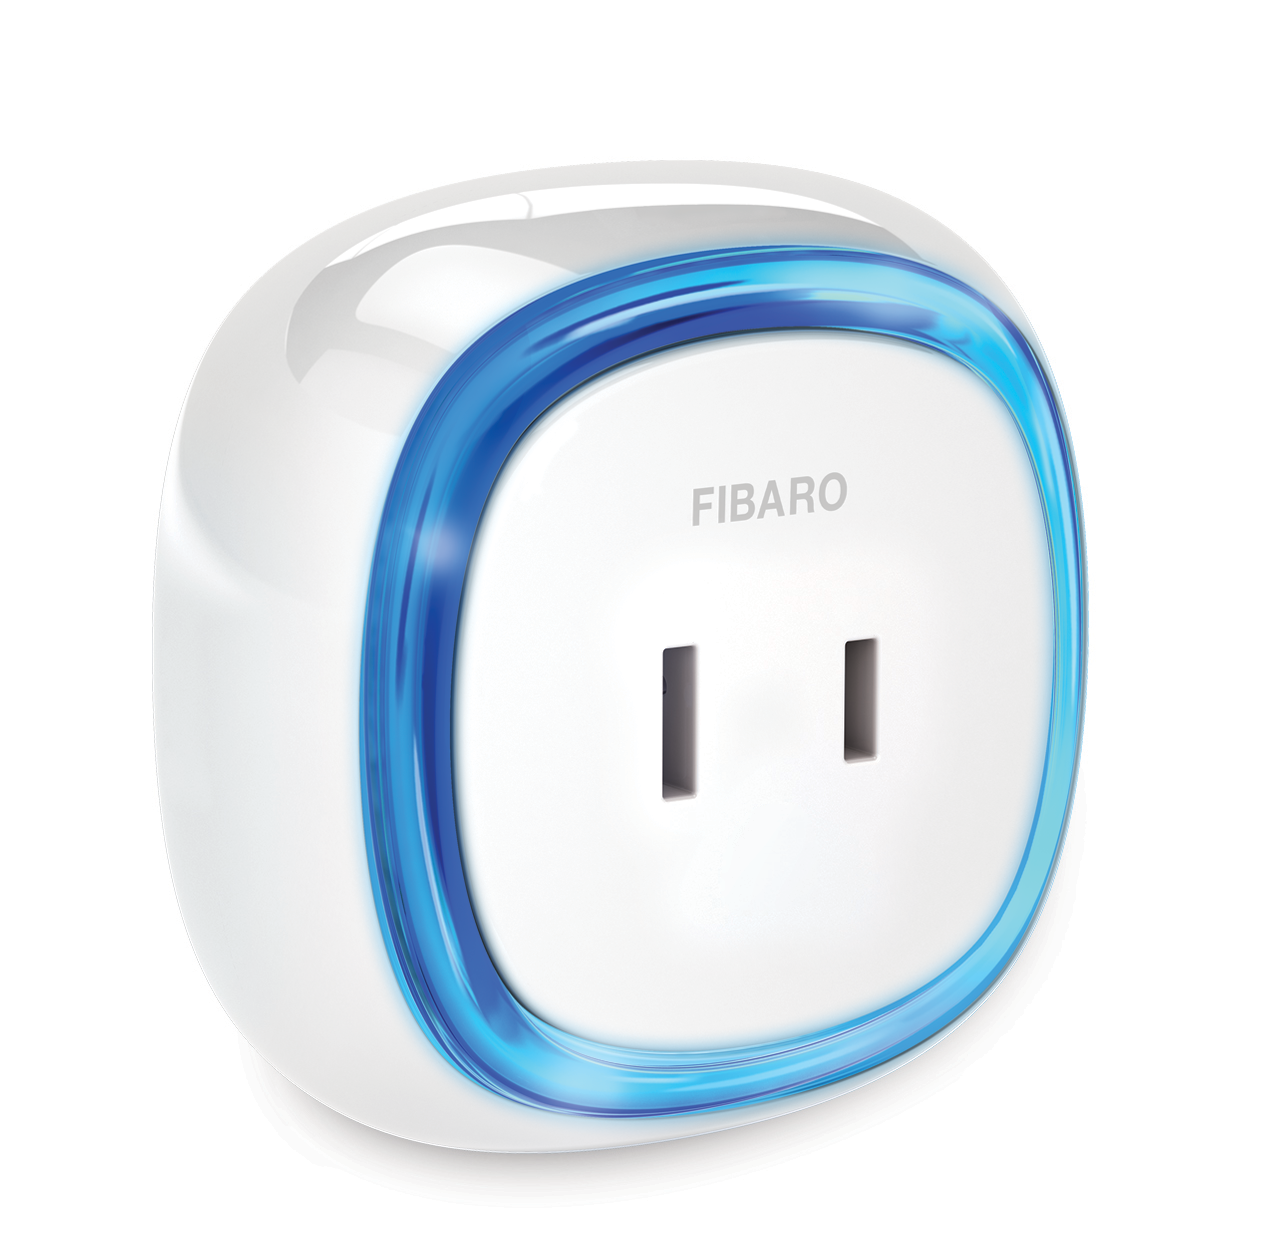 287d0a595e FIBARO Manuals | Smart home automation devices